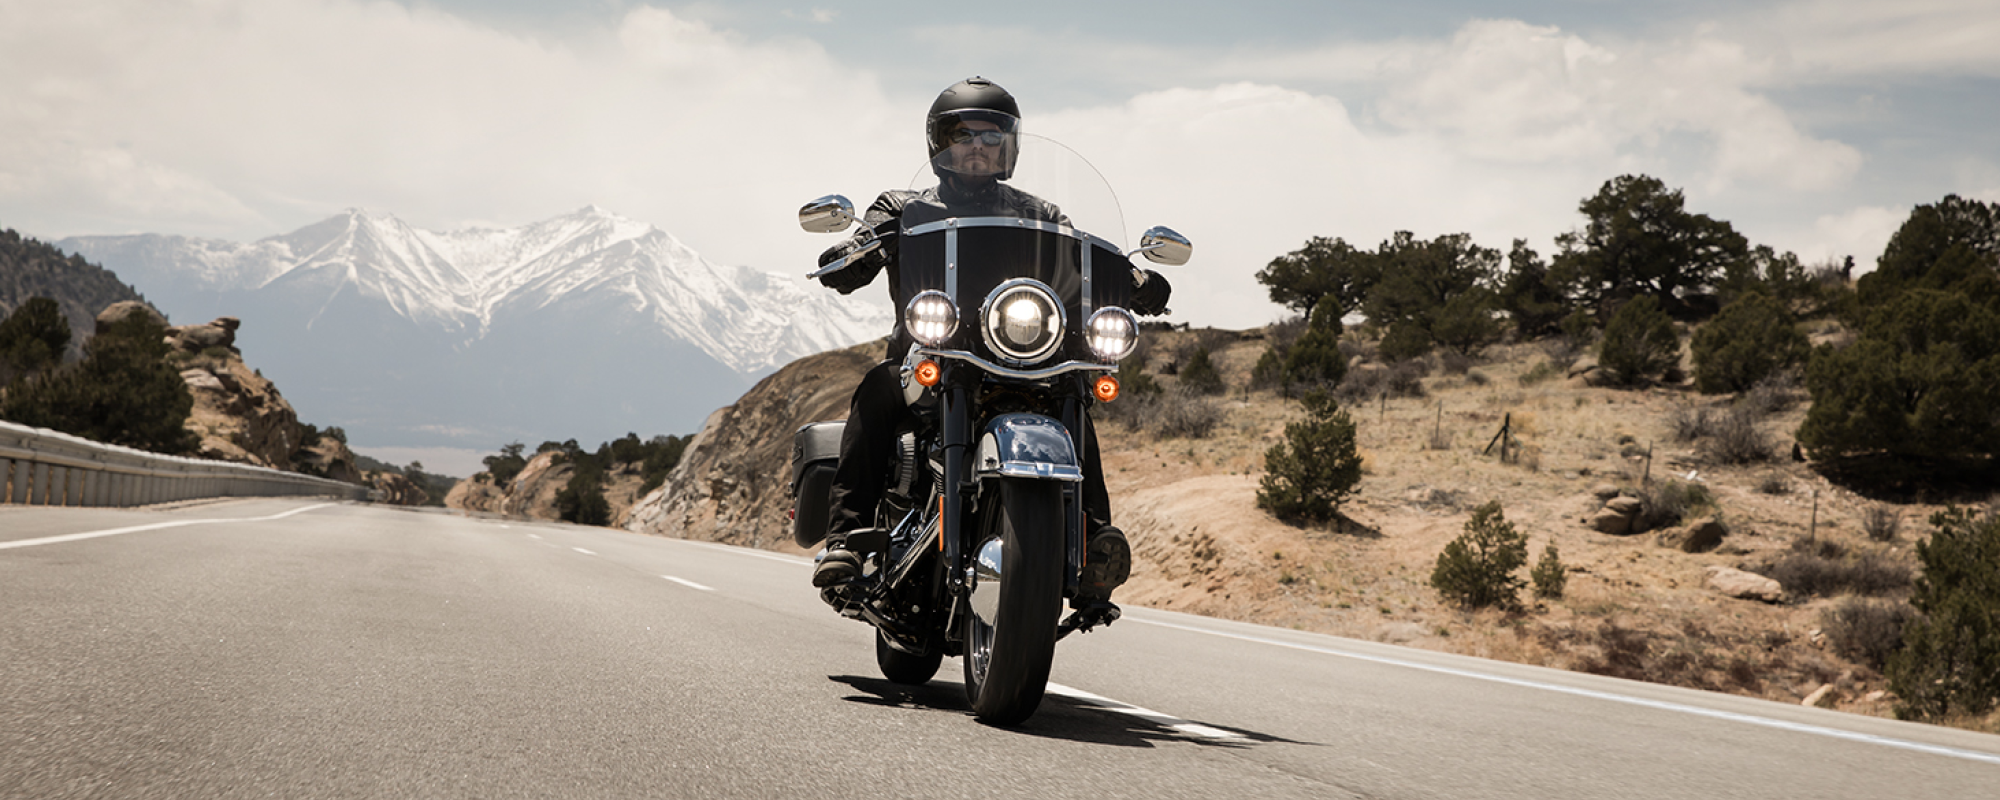 Get Approved for your Dream Bike at Harley-Davidson of Asheville